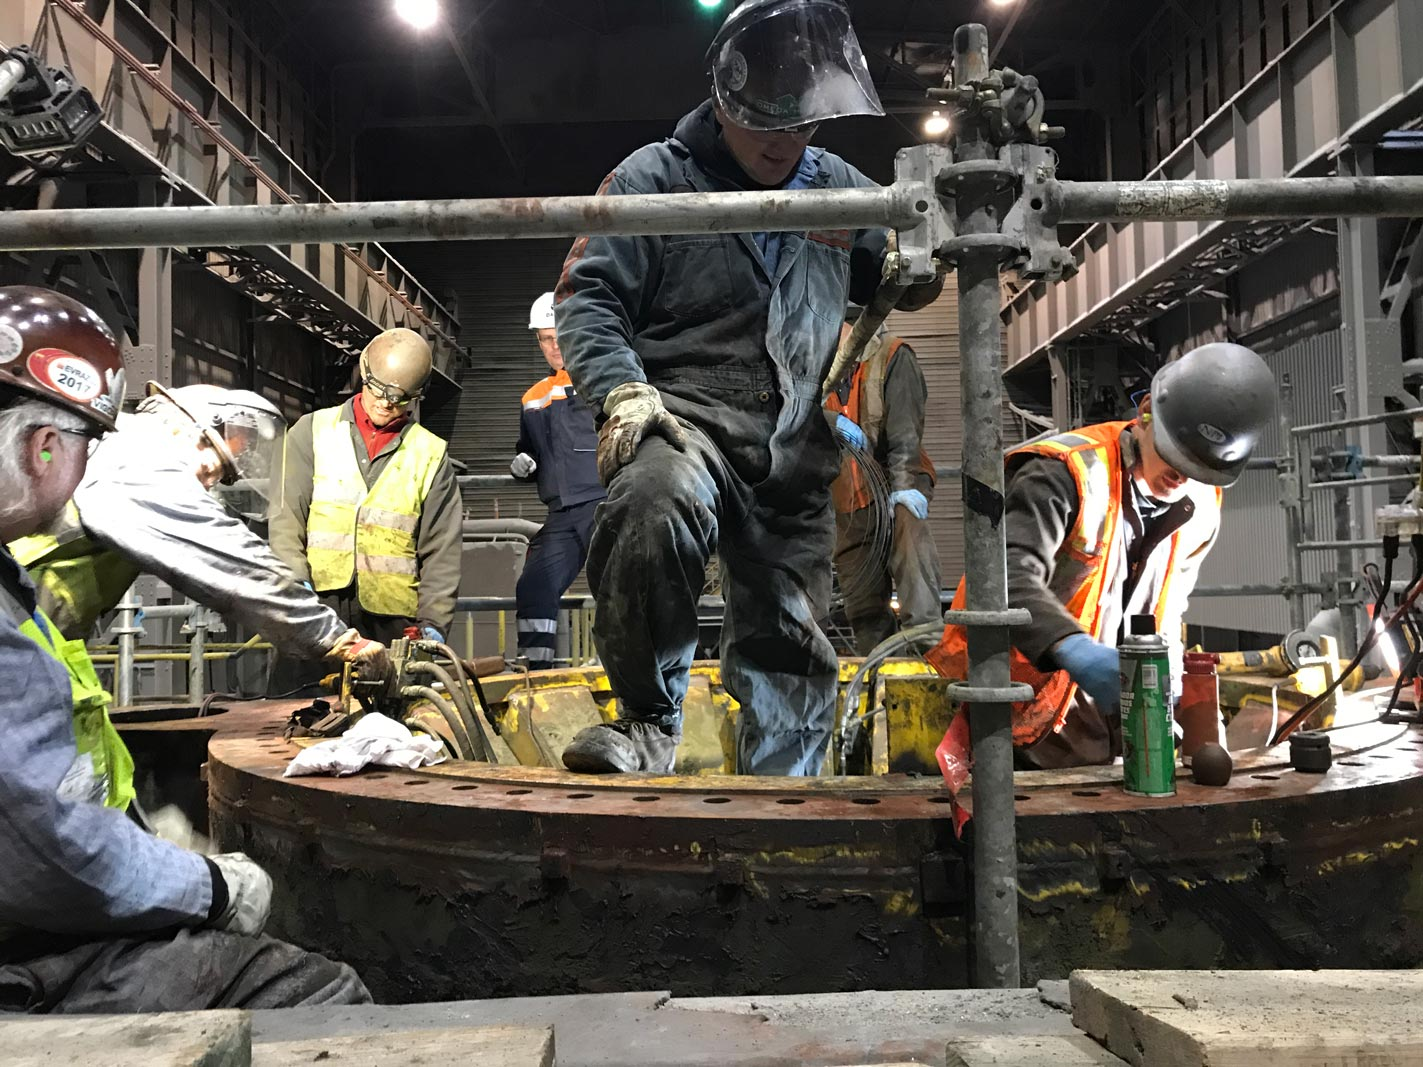 Omega Morgan millwright crew working on a steel mill ladle turret replacement for cascade steel mills